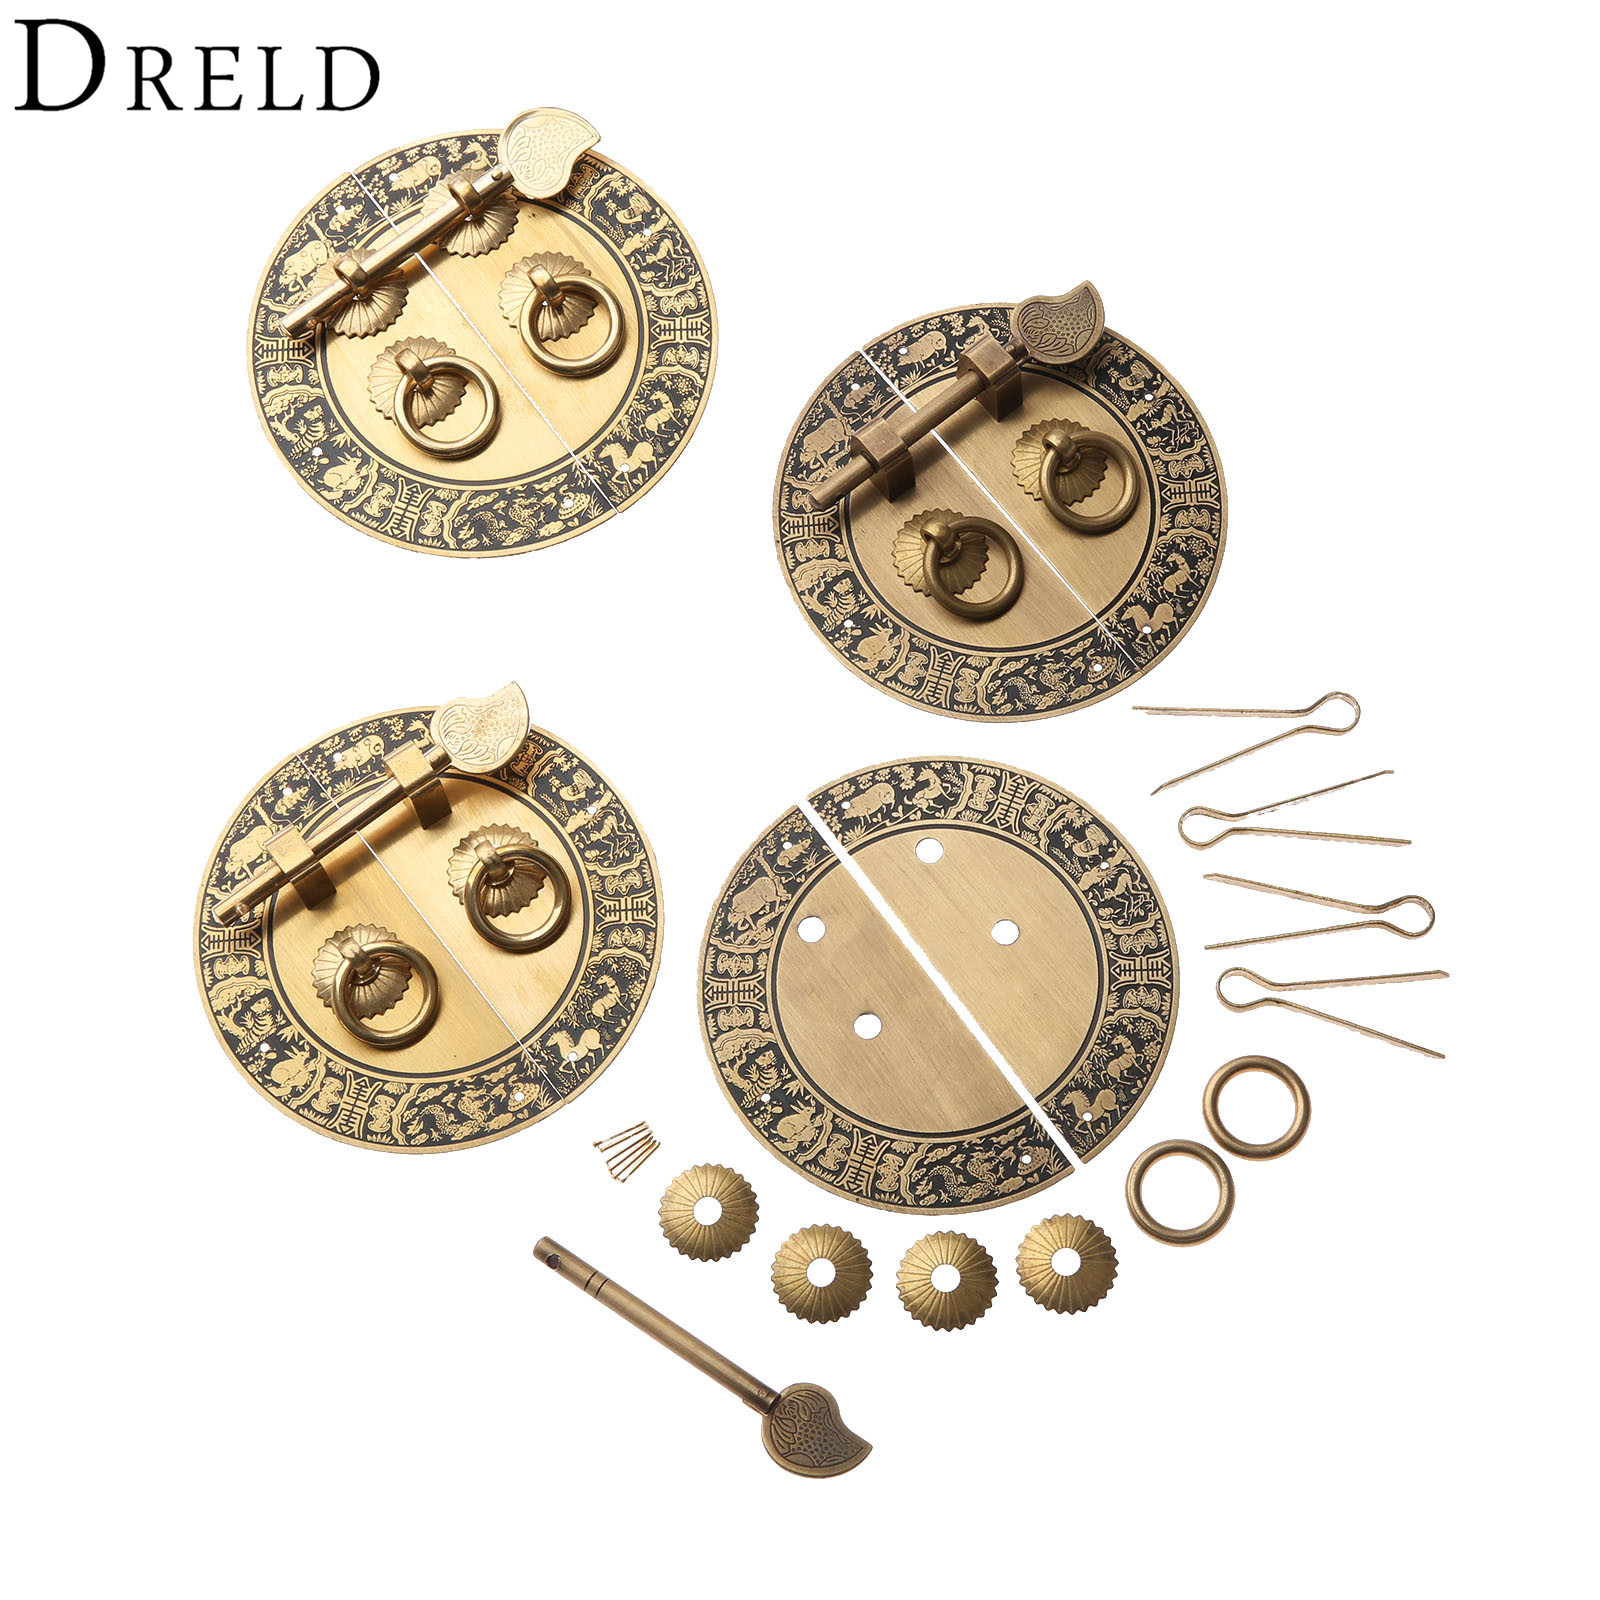 DRELD Chinese Antique Furniture Hardware Brass Round Vintage Pull Handle Knobs for Door Cupboard Wooden Box Round Copper LockDRELD Chinese Antique Furniture Hardware Brass Round Vintage Pull Handle Knobs for Door Cupboard Wooden Box Round Copper Lock